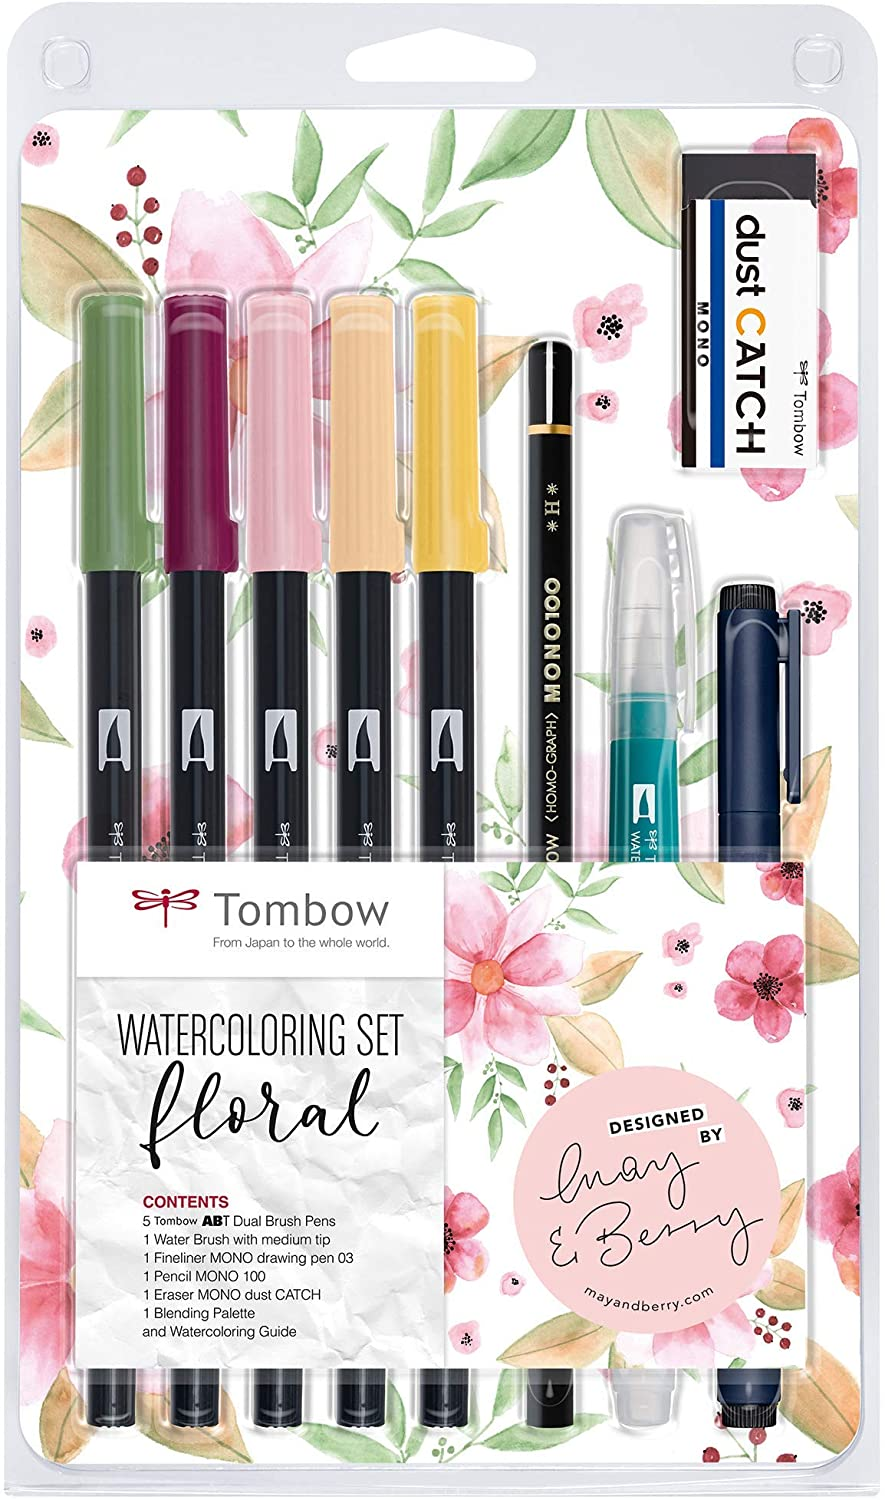 Watercolouring Set Floral